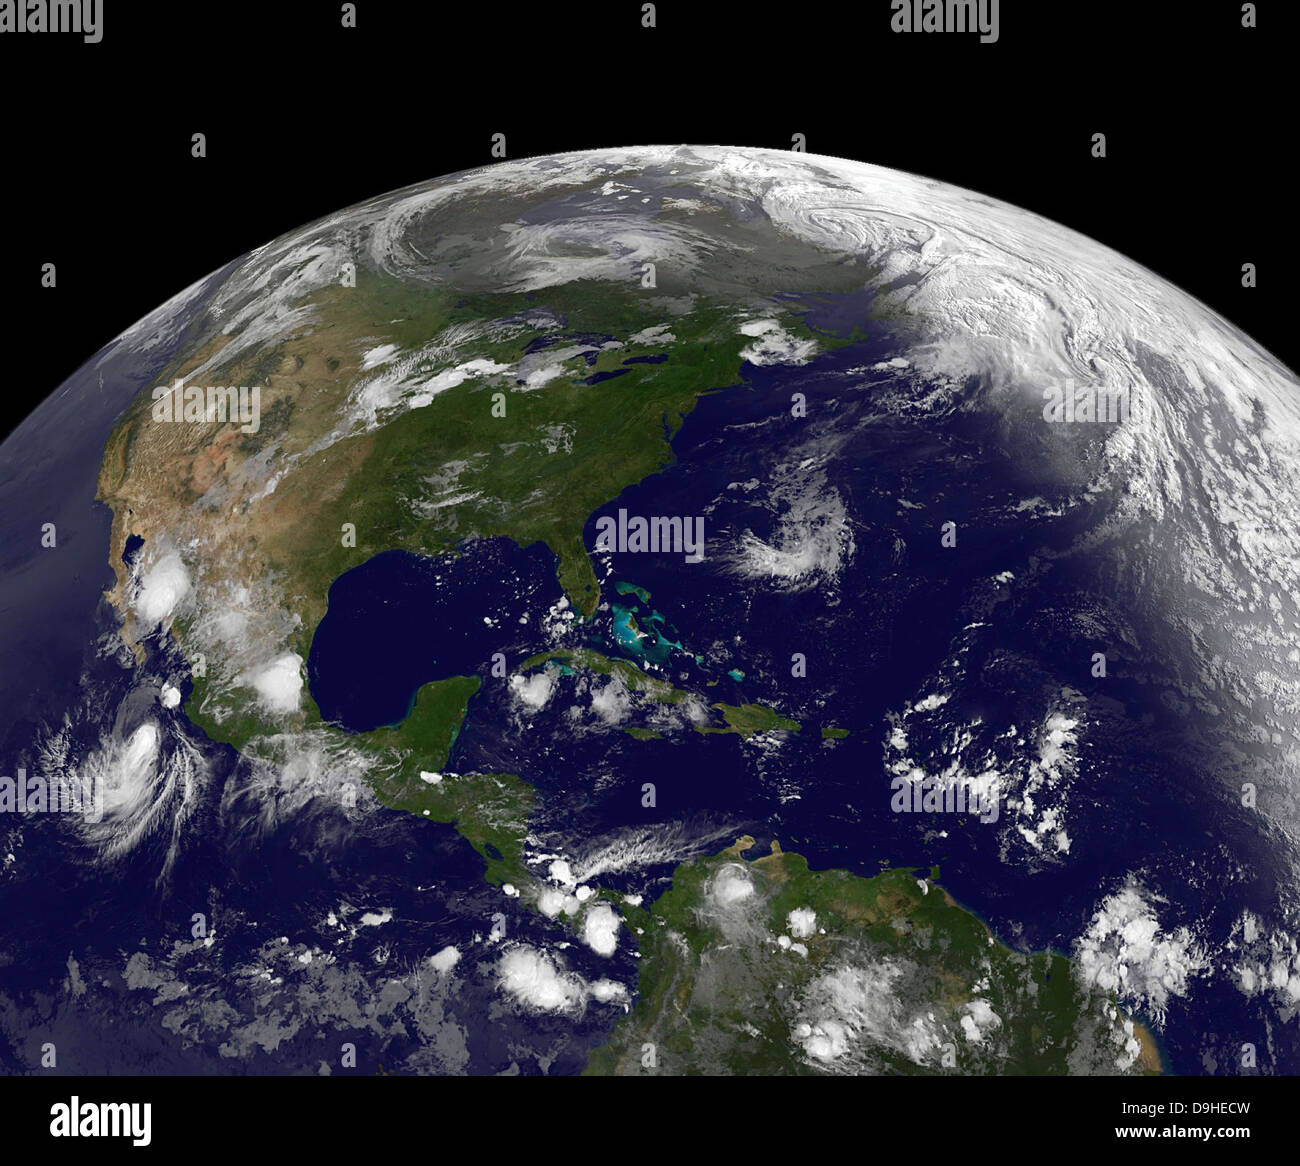 July 22, 2011 - Tropical storms on planet Earth. - Stock Image